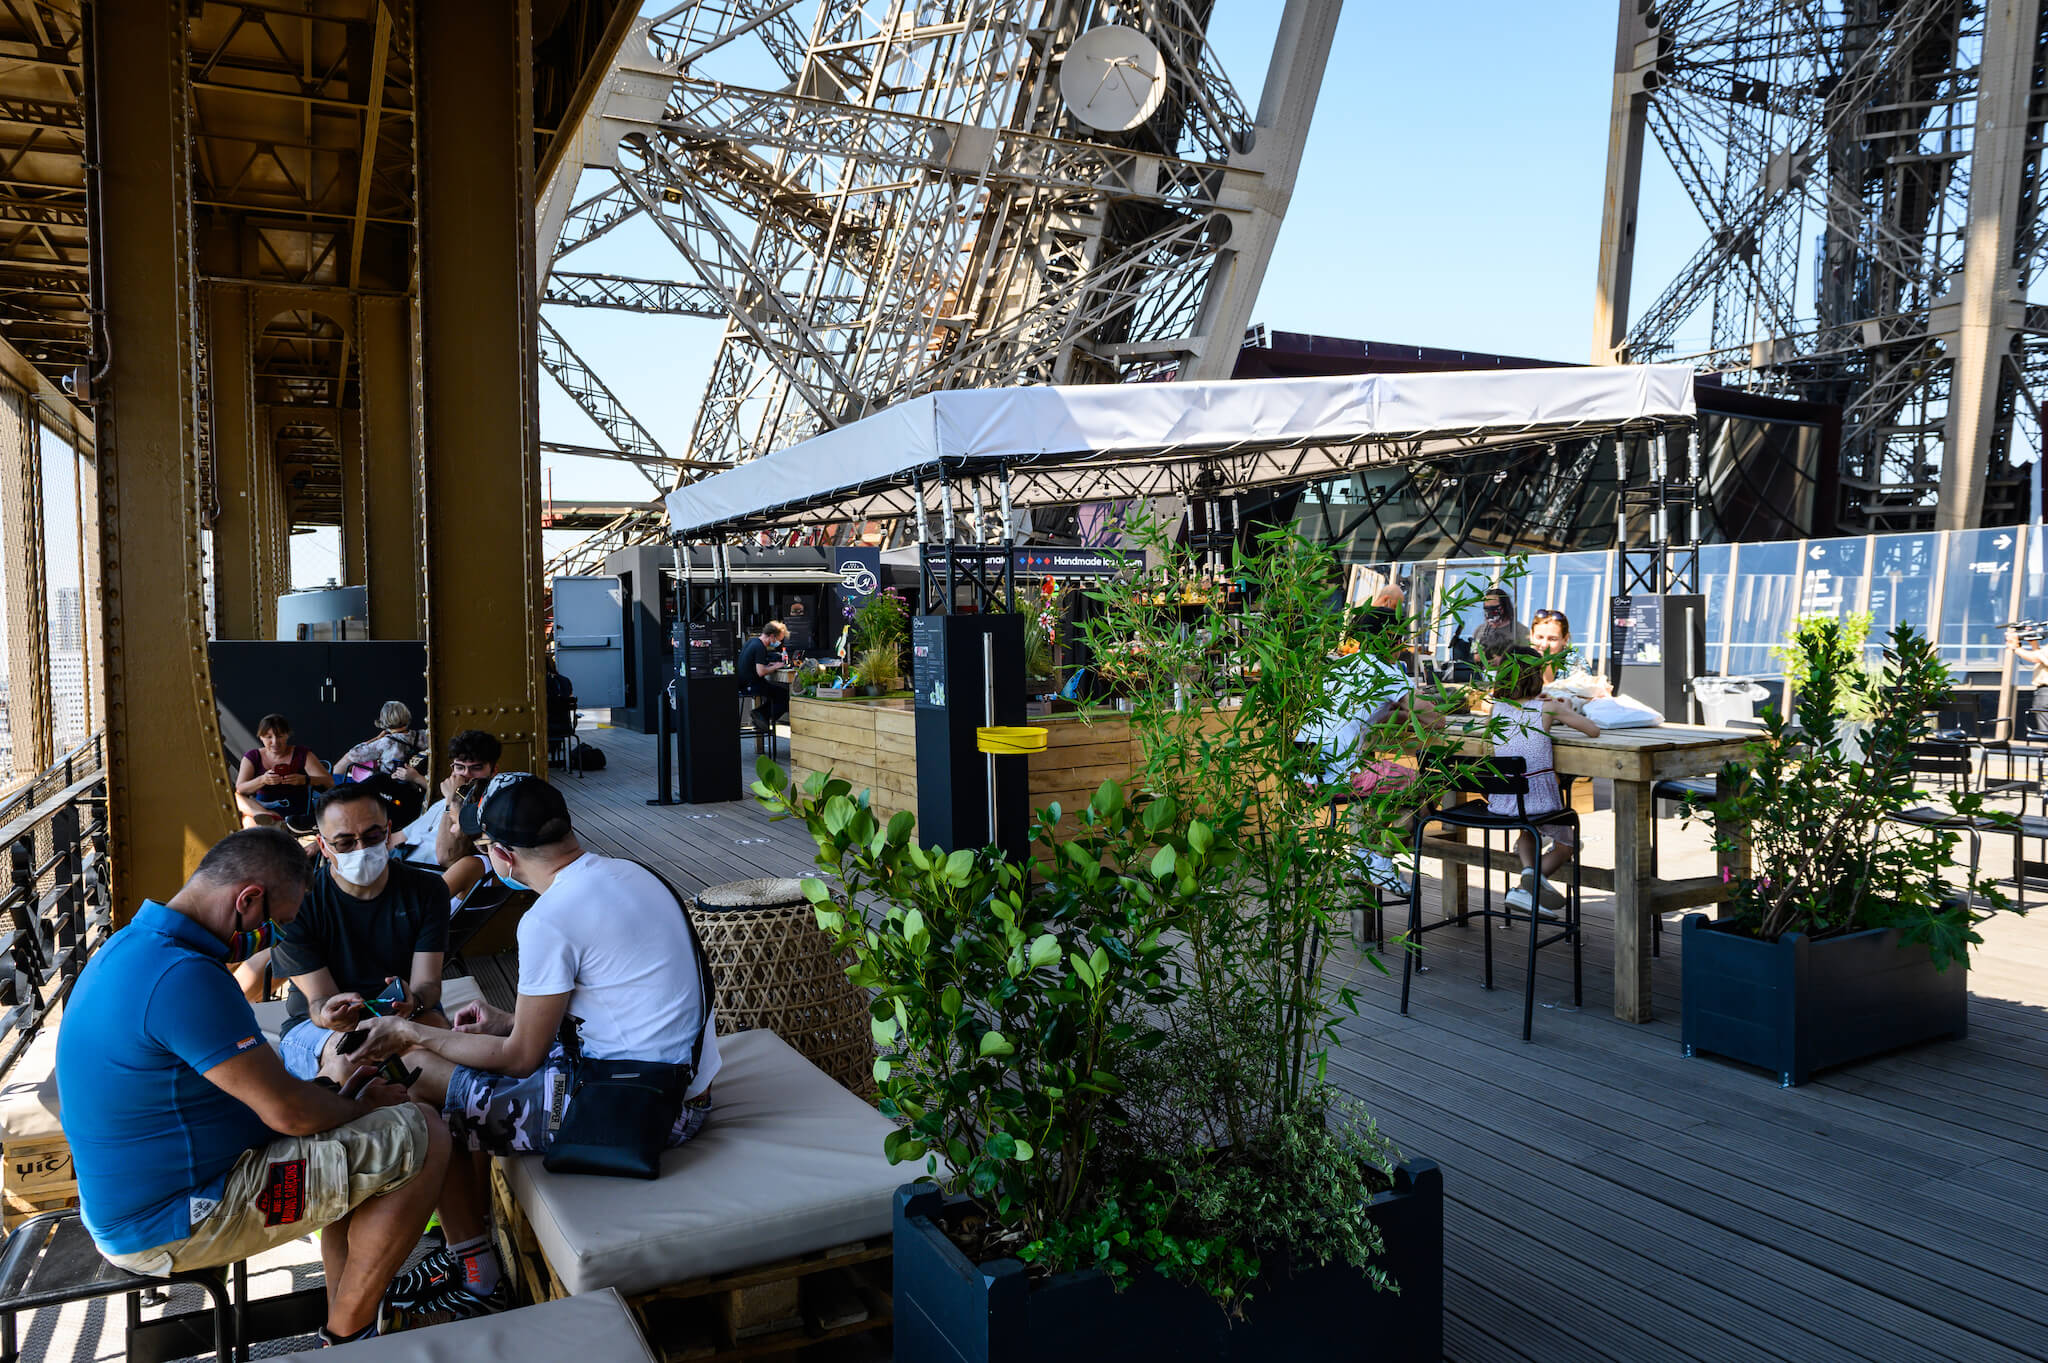 The wooden terrace of the Eiffel Tower in Paris. There are groups of people seated, some wearing face masks. You can see the pillars of the Eiffel Tower around them. There is a wooden bar in the middle with a white tarp roof. There are also some pot plants.